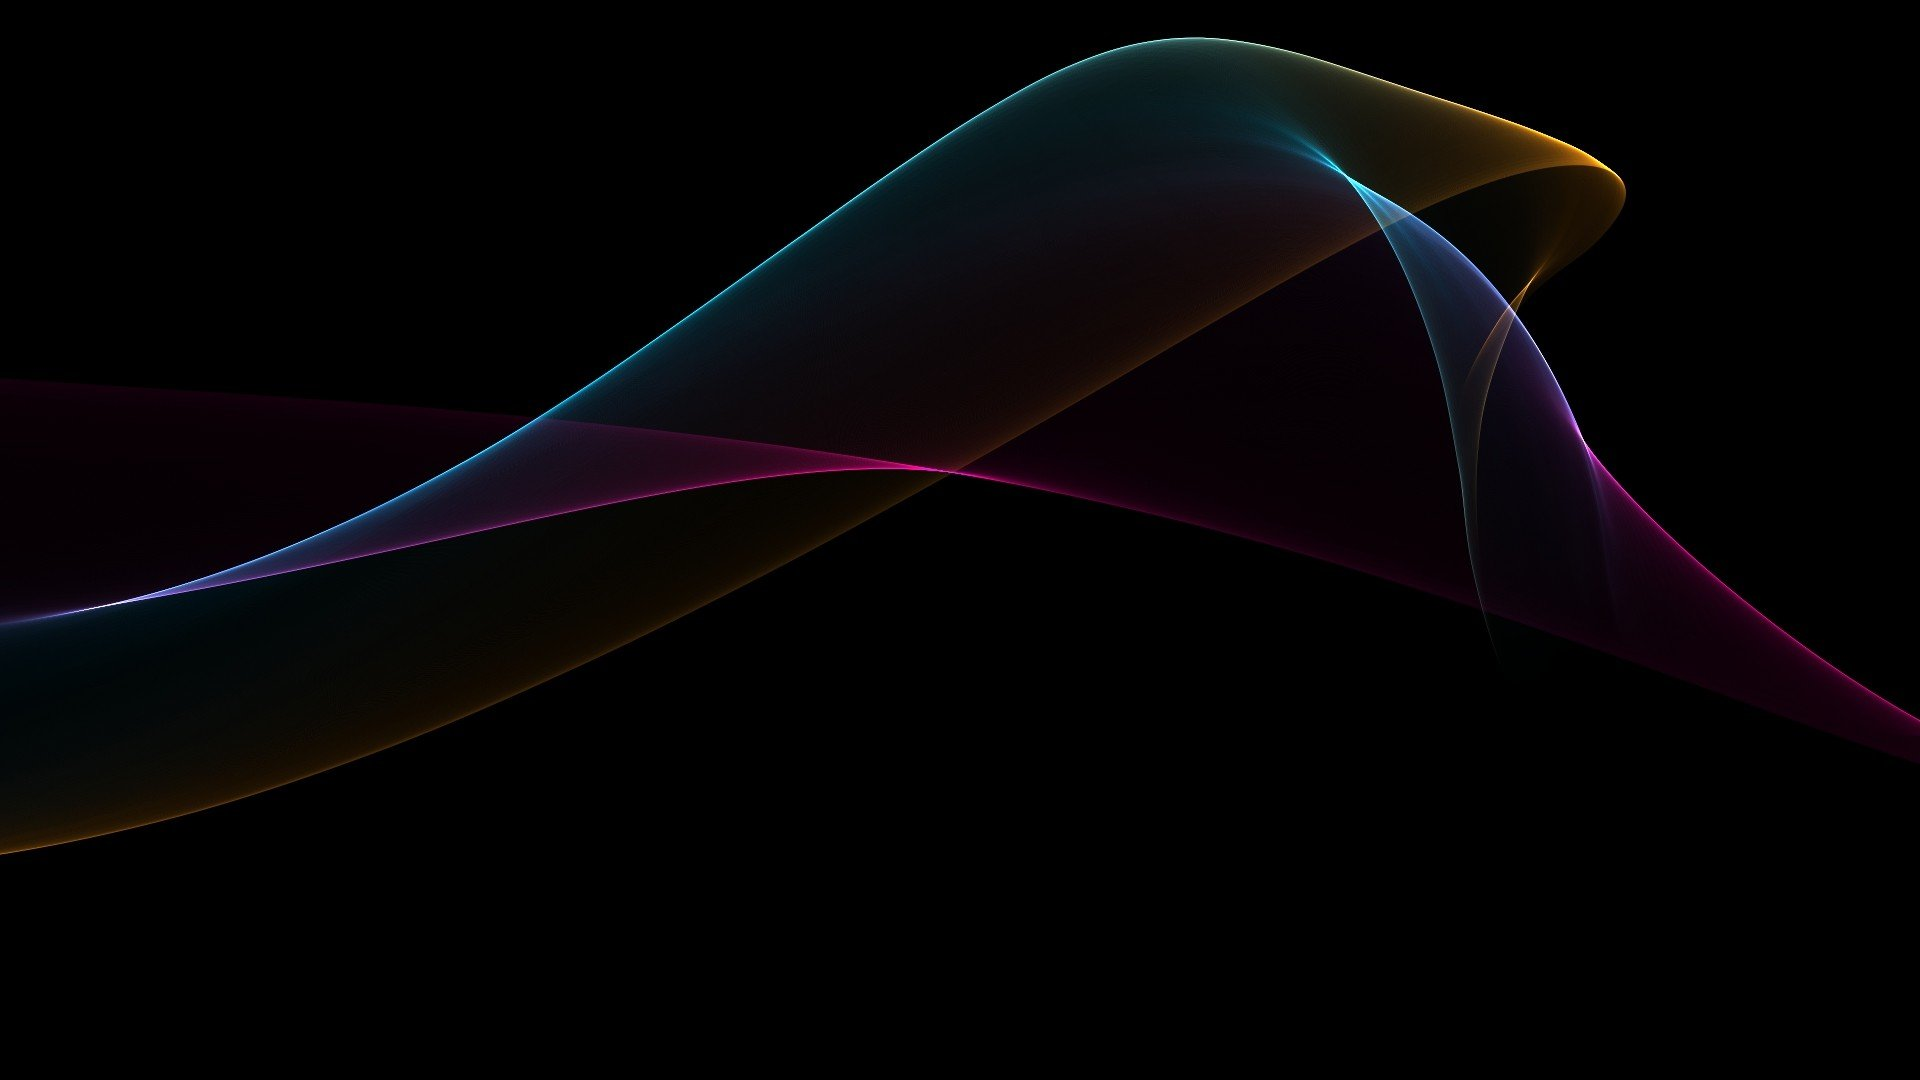 Black Abstract Background 1920x1080